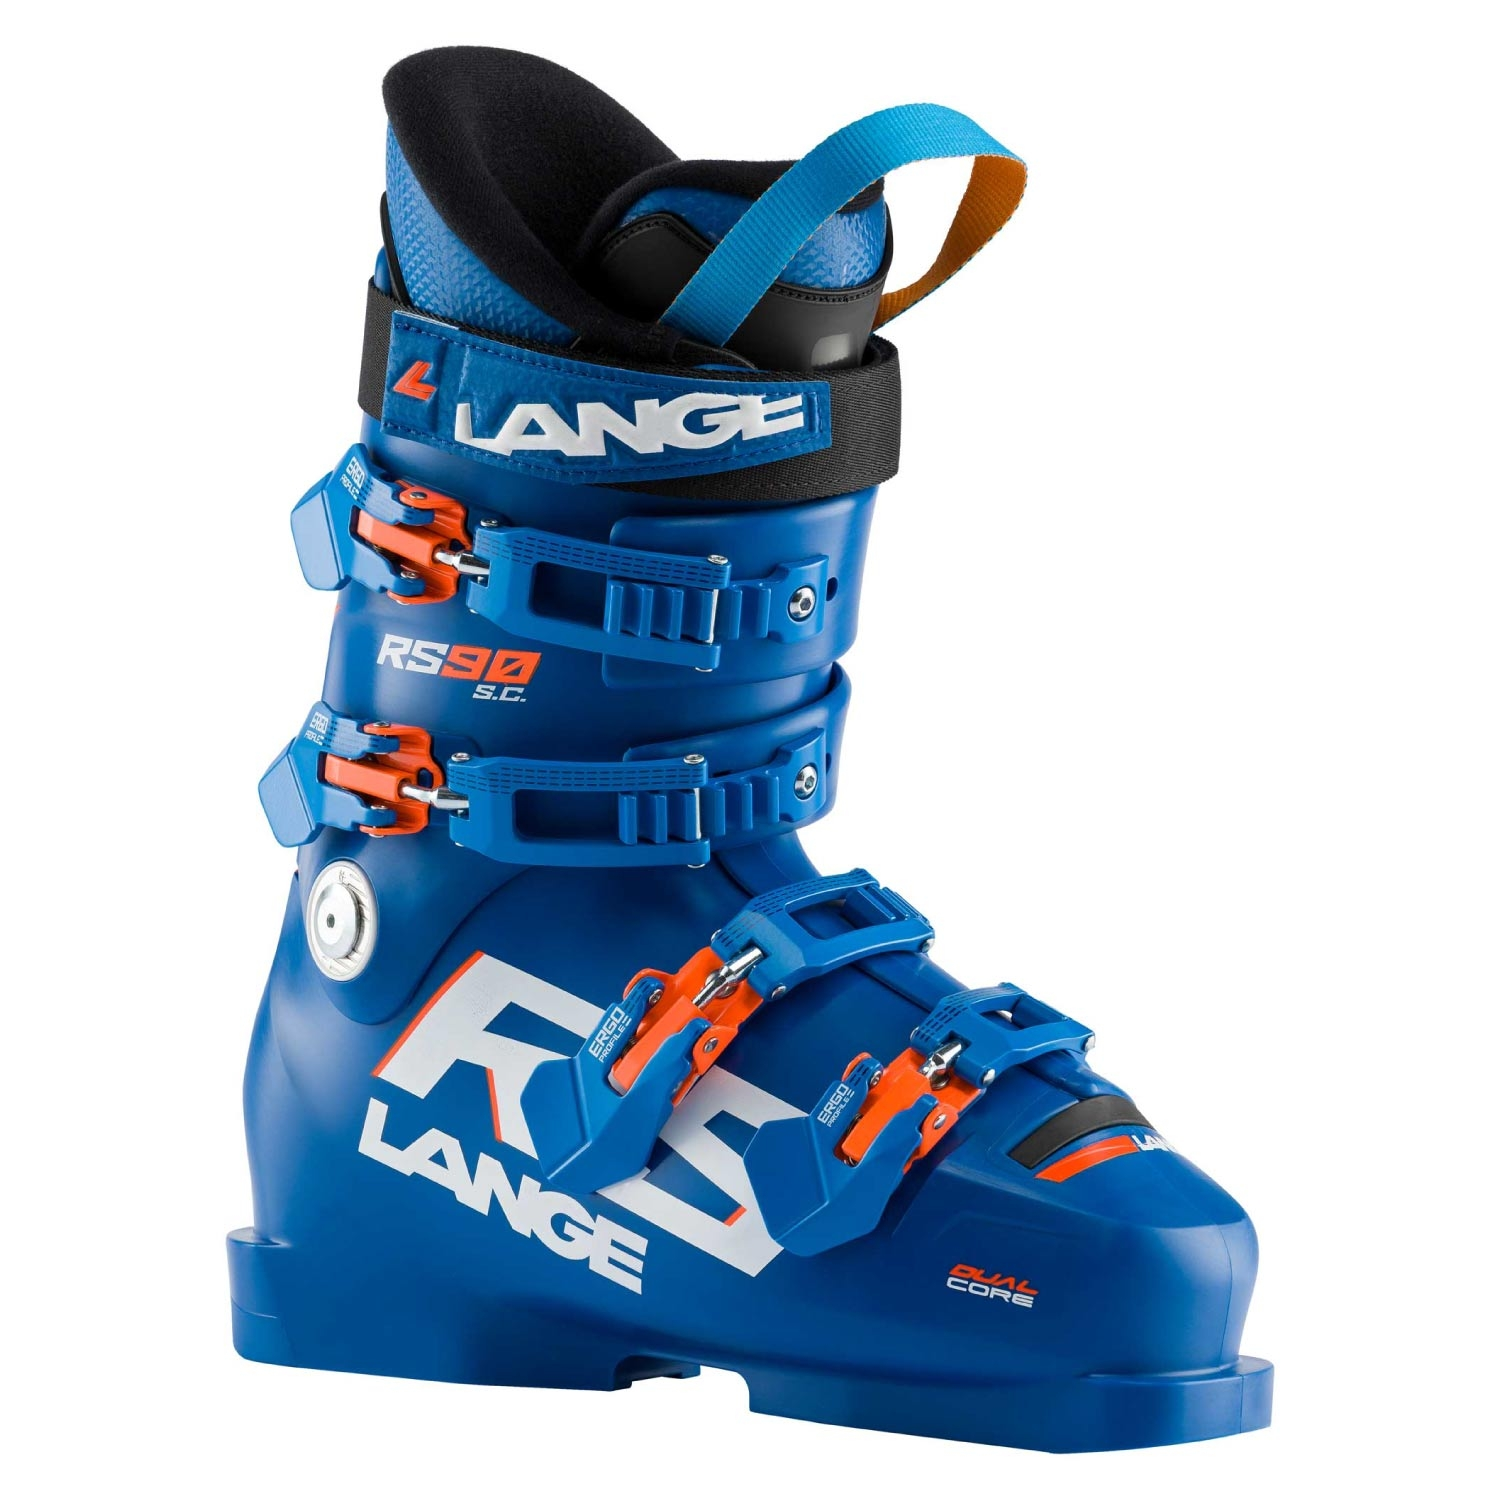 Lange RS 90 S C Ski Boots Power Blue 2021